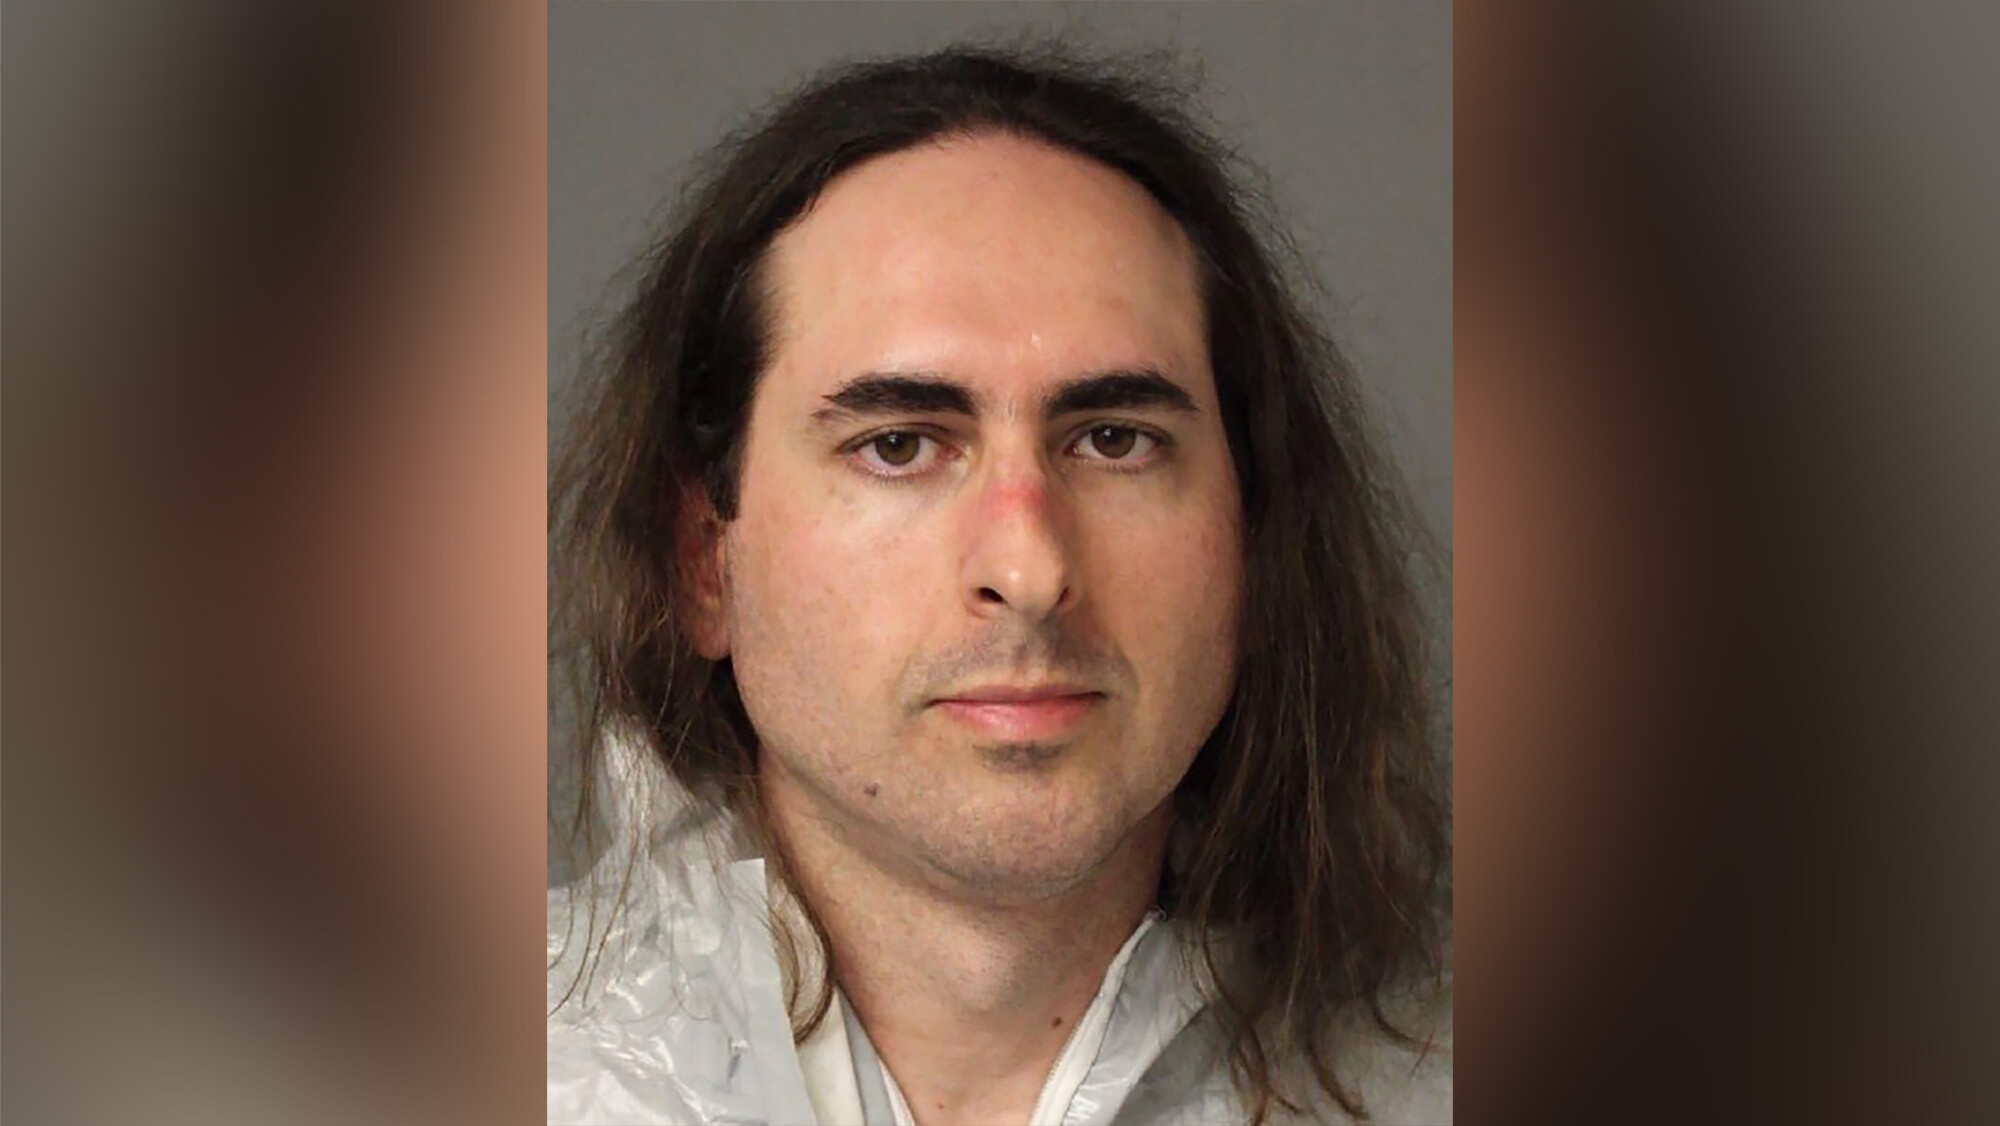 Maryland jury finds gunman in Capital Gazette shooting criminally responsible and rejects his mental illness argument